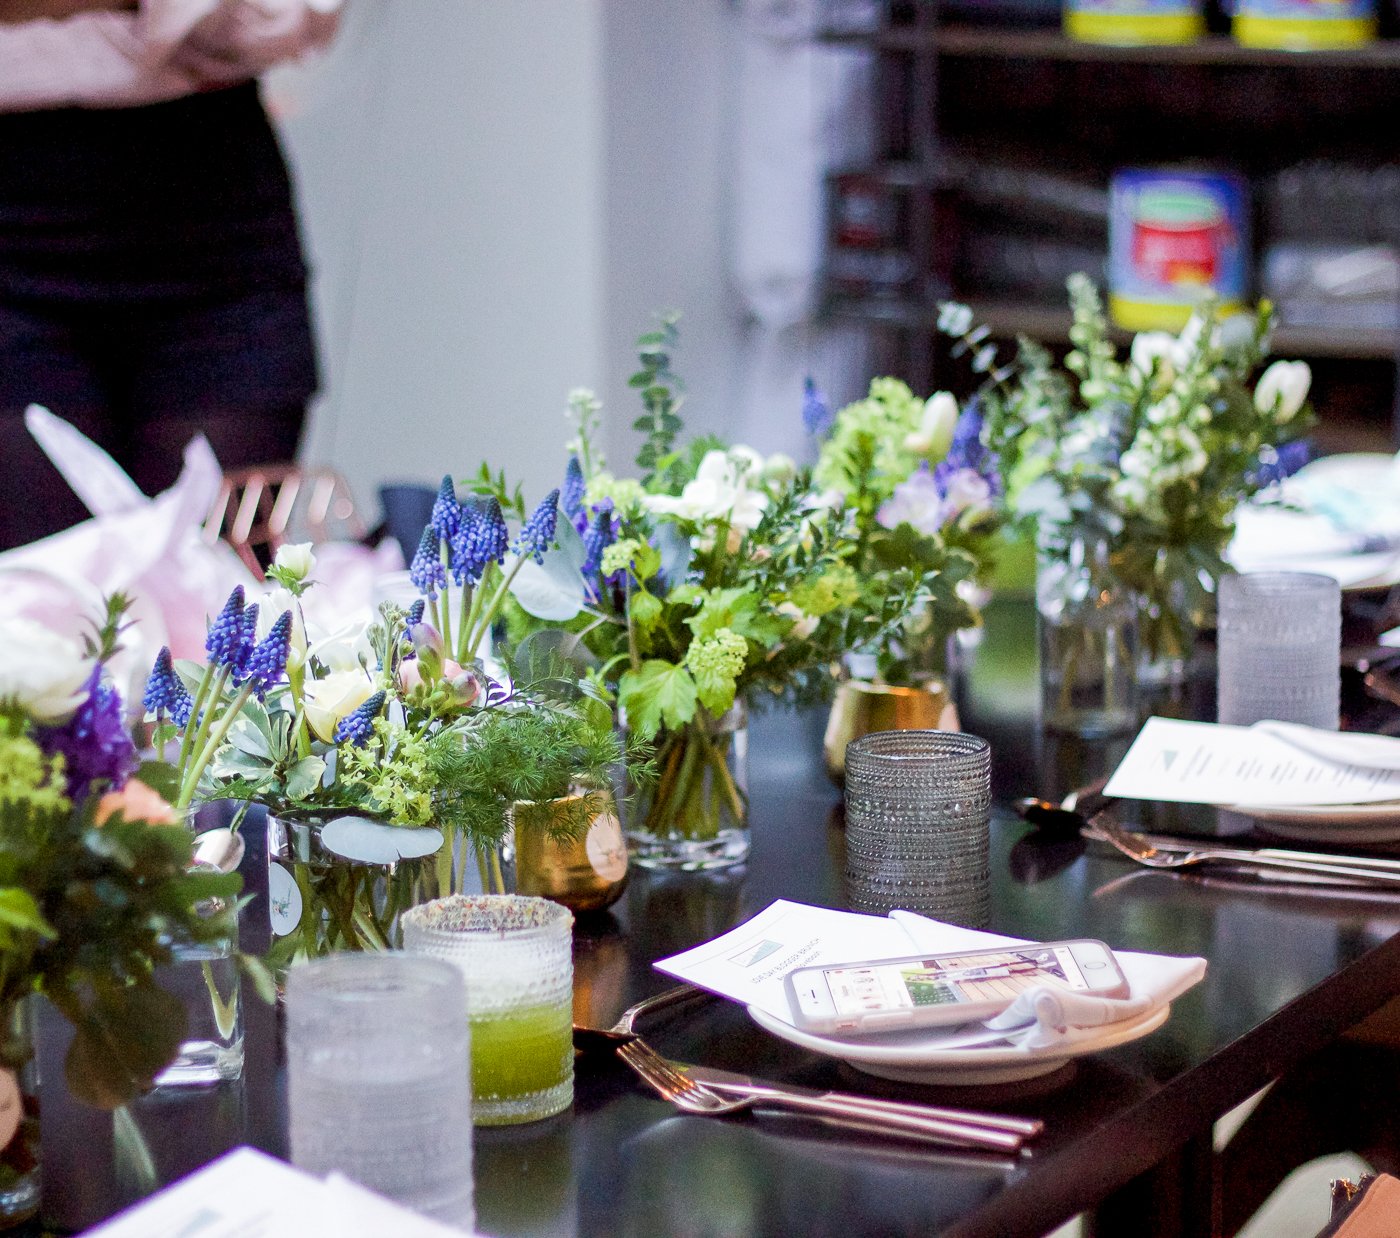 Wildnorth Flowers table set up for Toronto blogger brunch at Planta